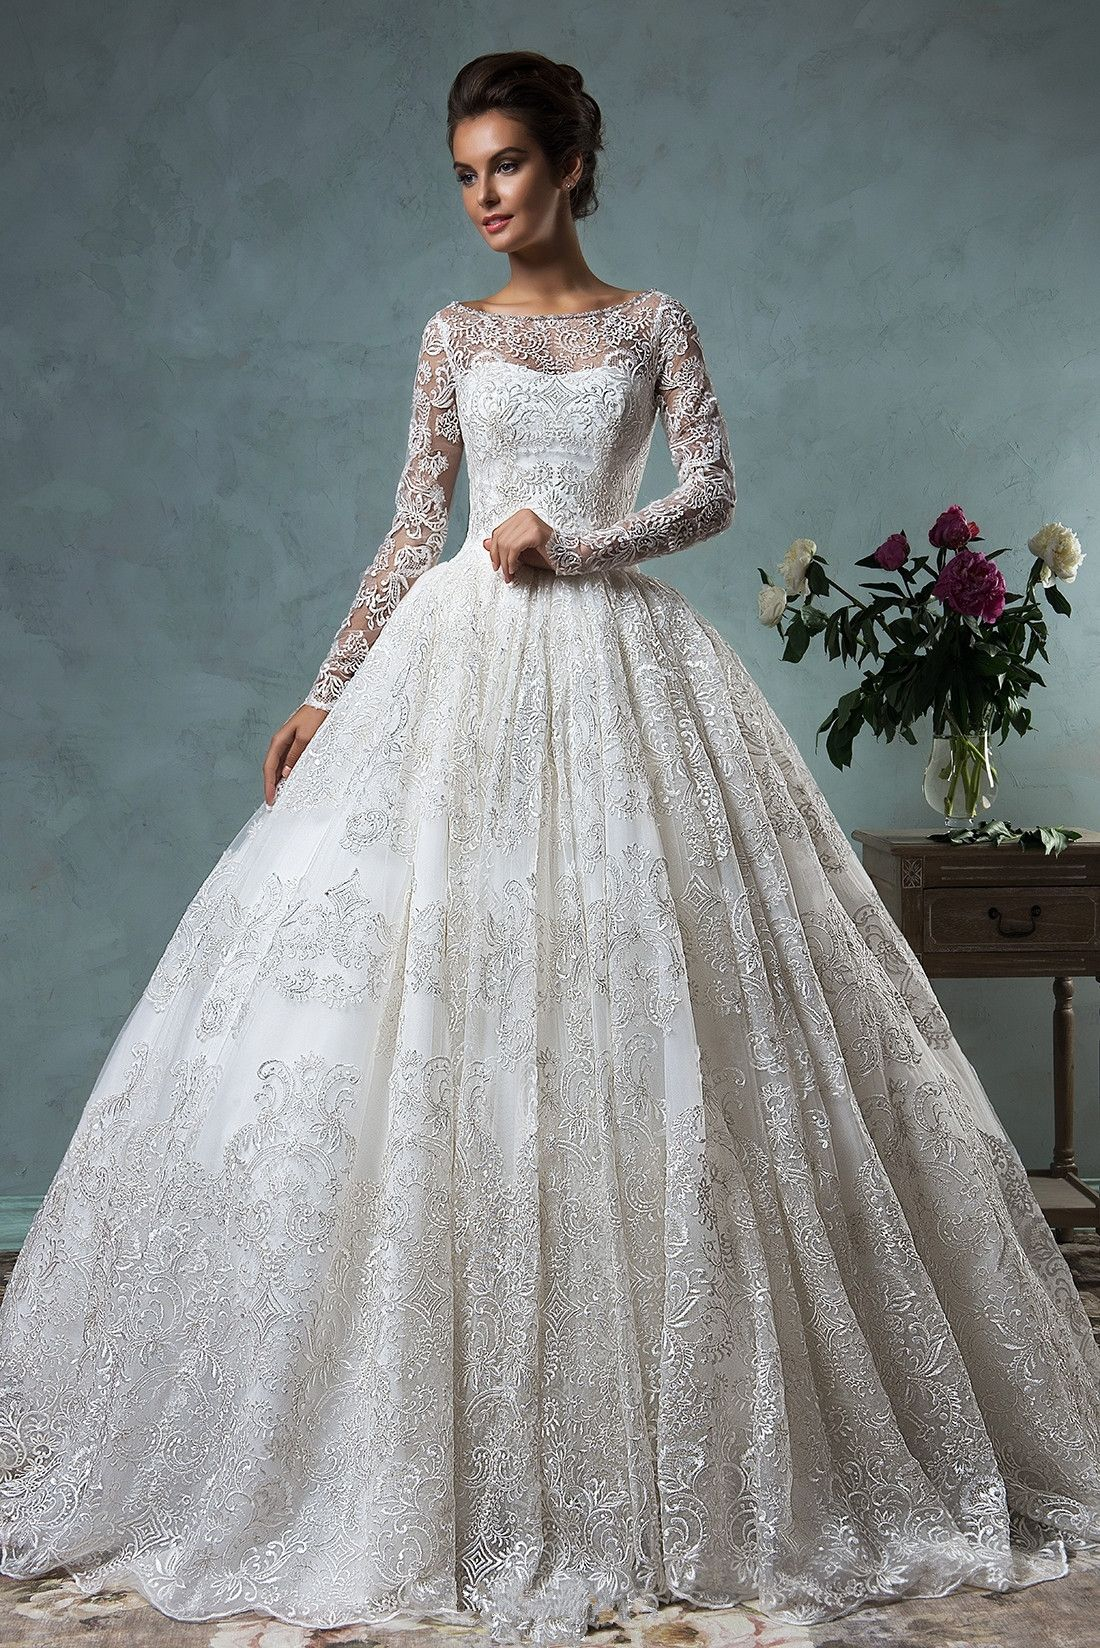 Delicate Lace Liques Ball Gown Wedding Dress 2016 Zipper On Back